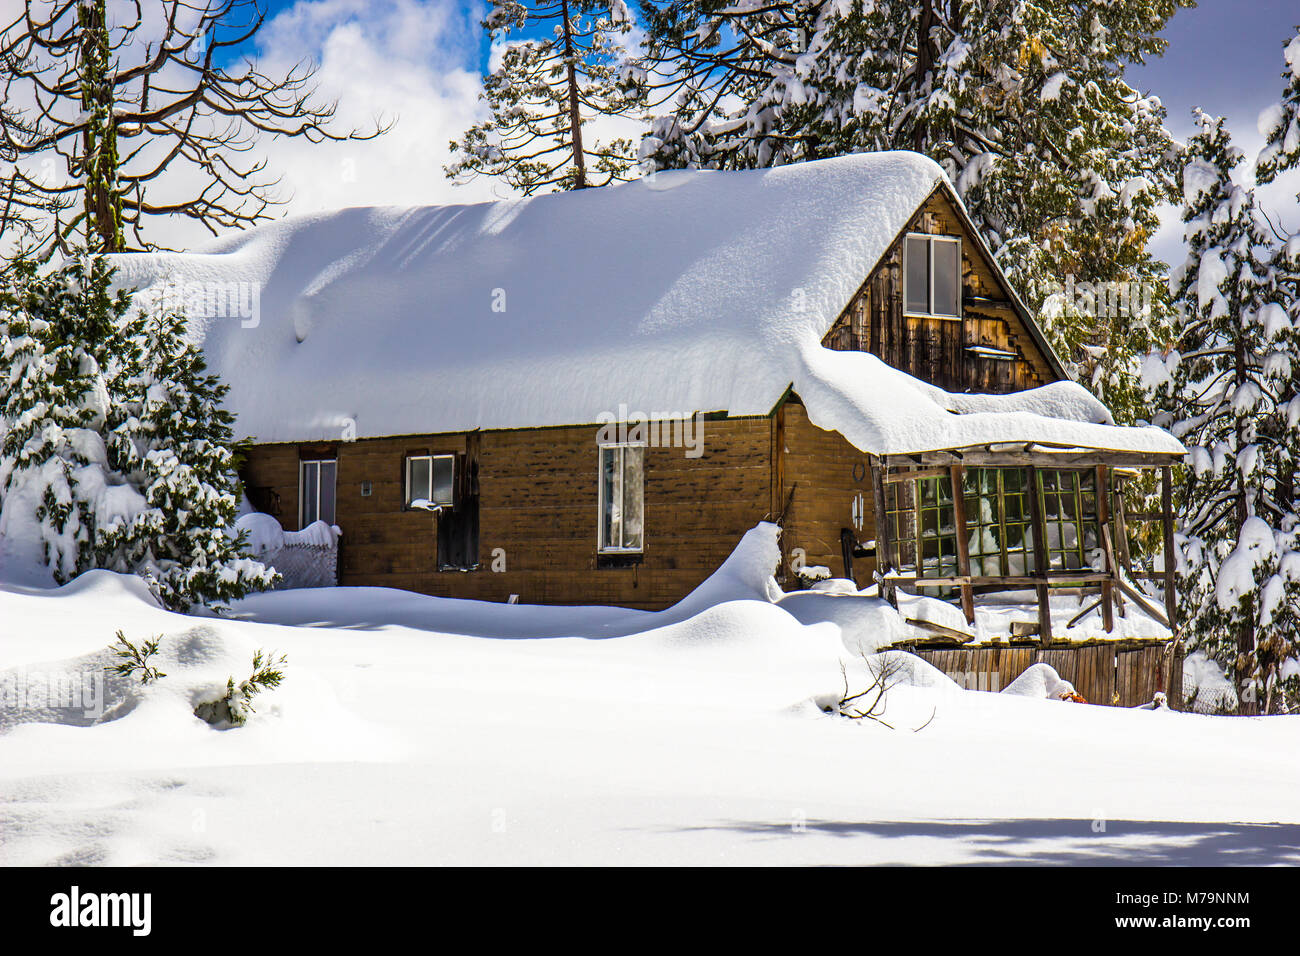 Wooden Cabin With Snow Piled High On Roof Stock Photo